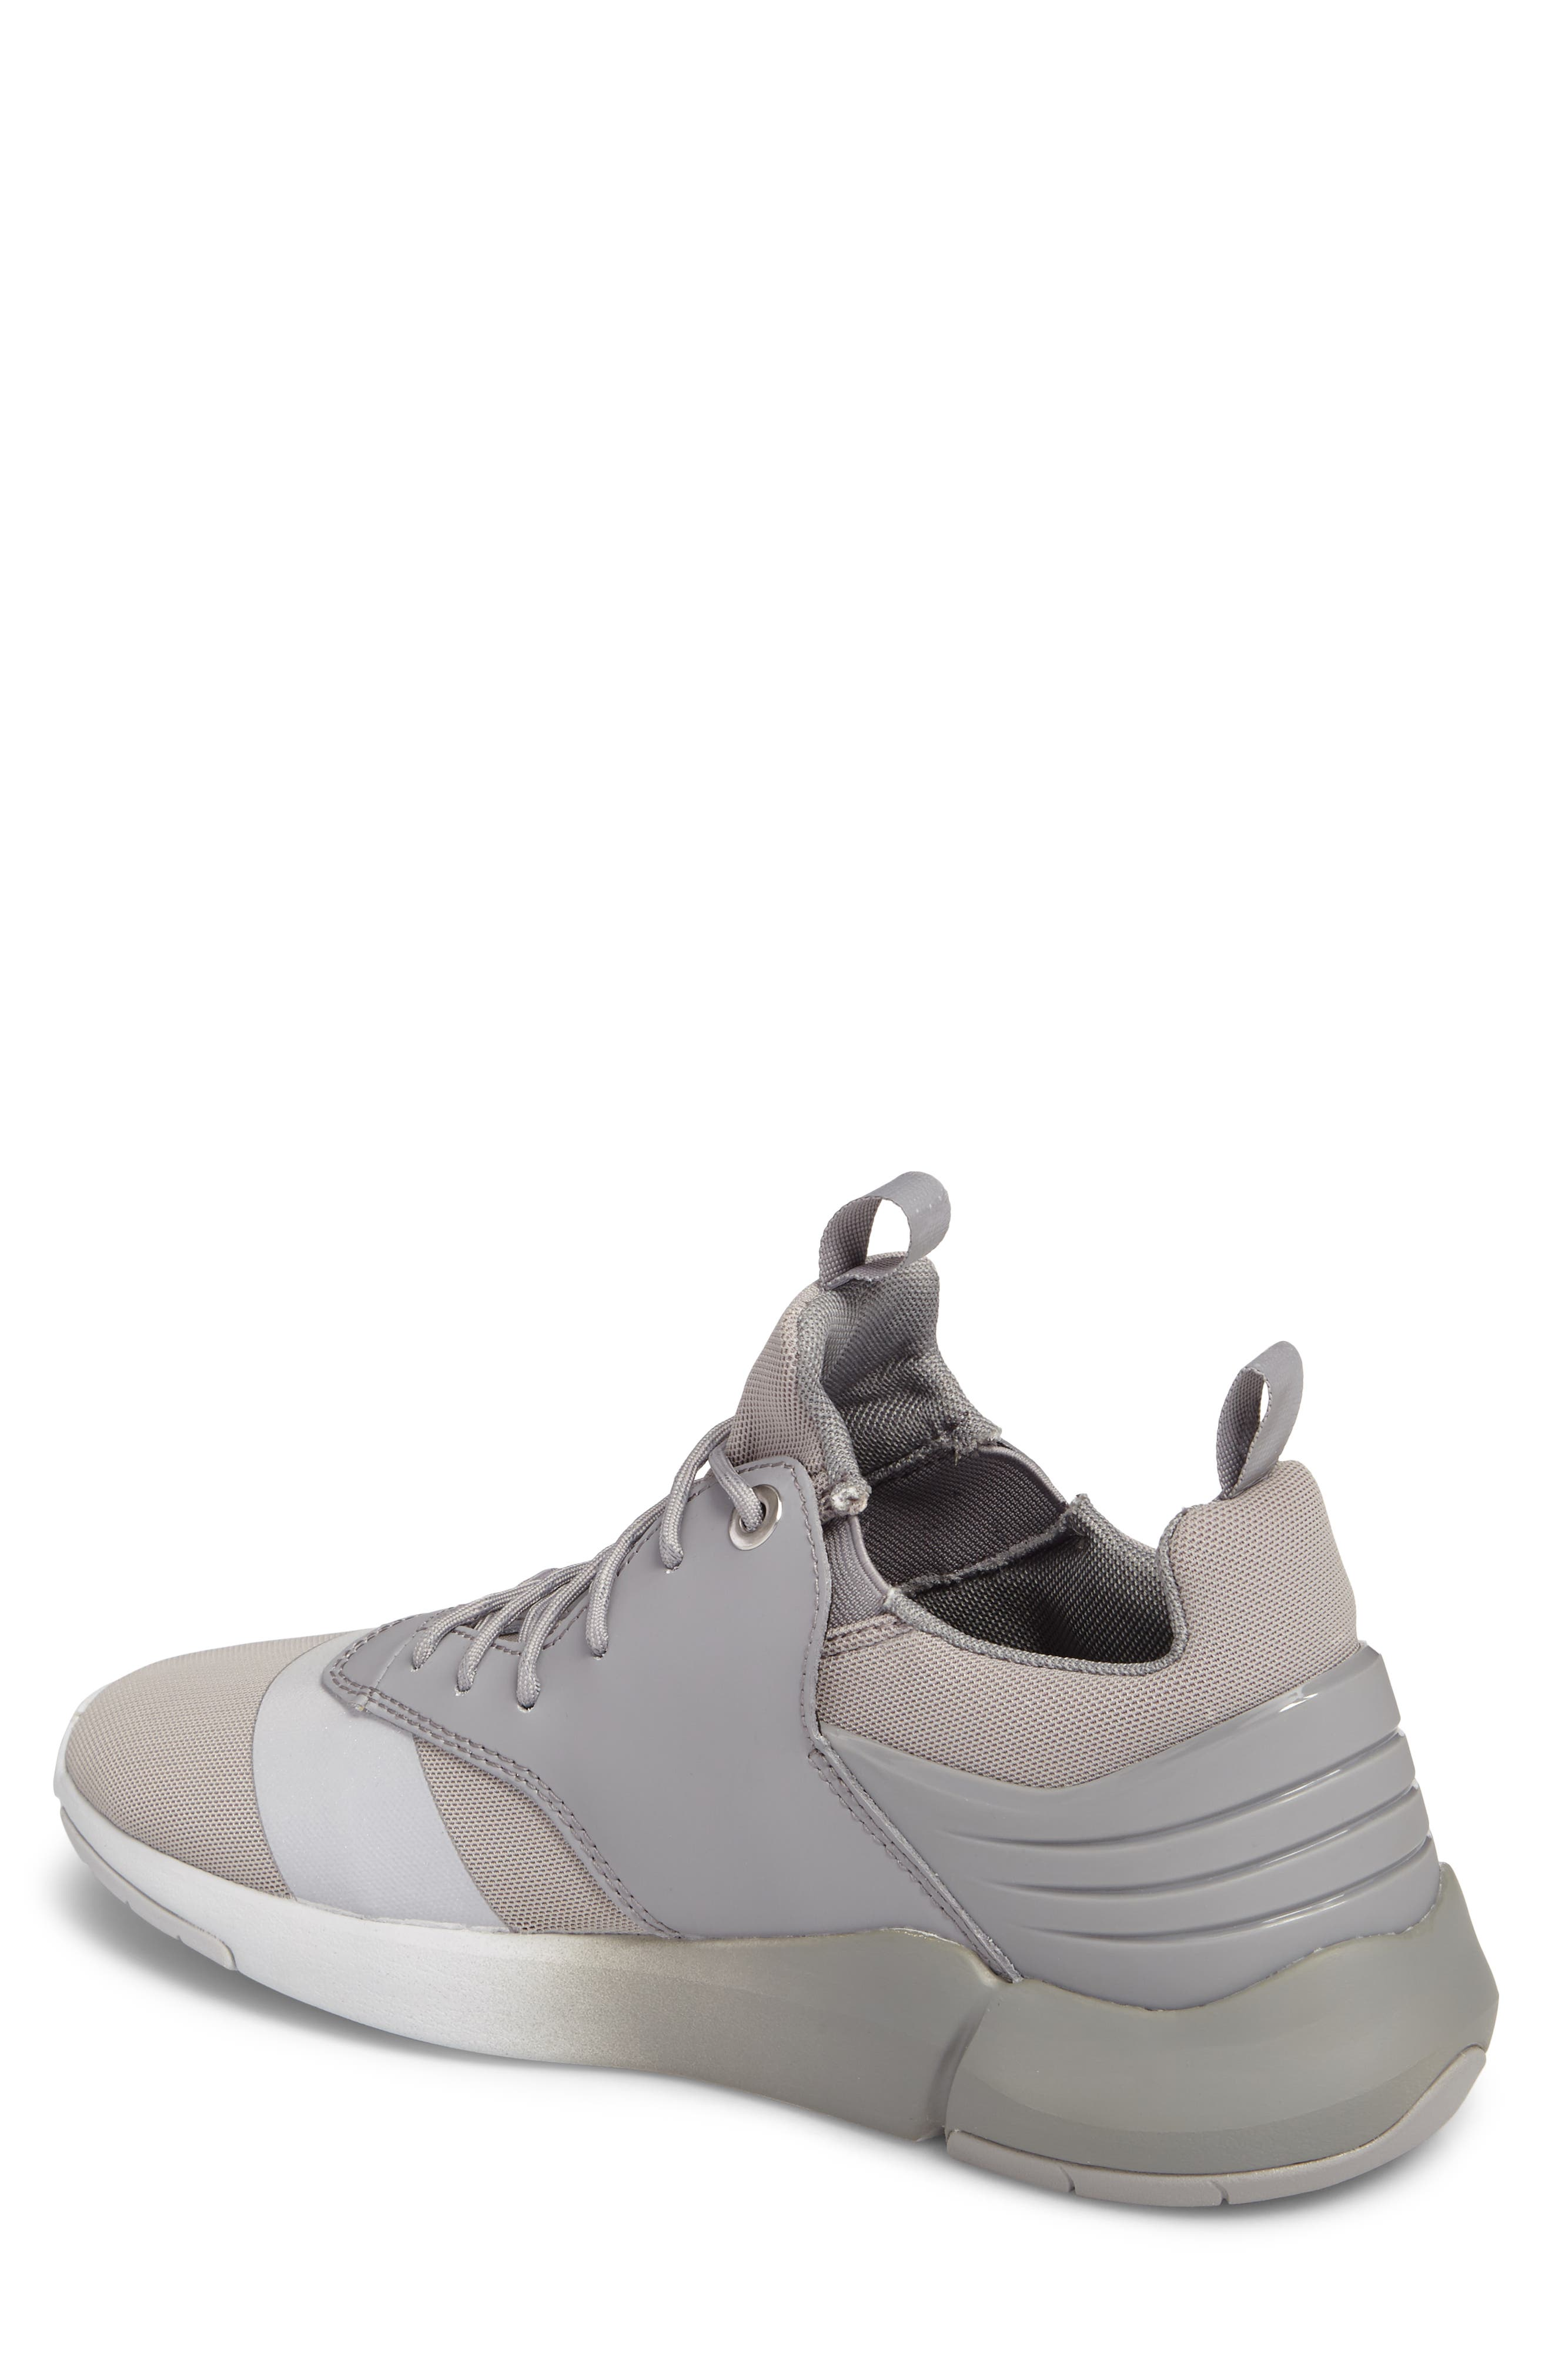 Alternate Image 2  - Creative Recreation Motus Sneaker (Men)